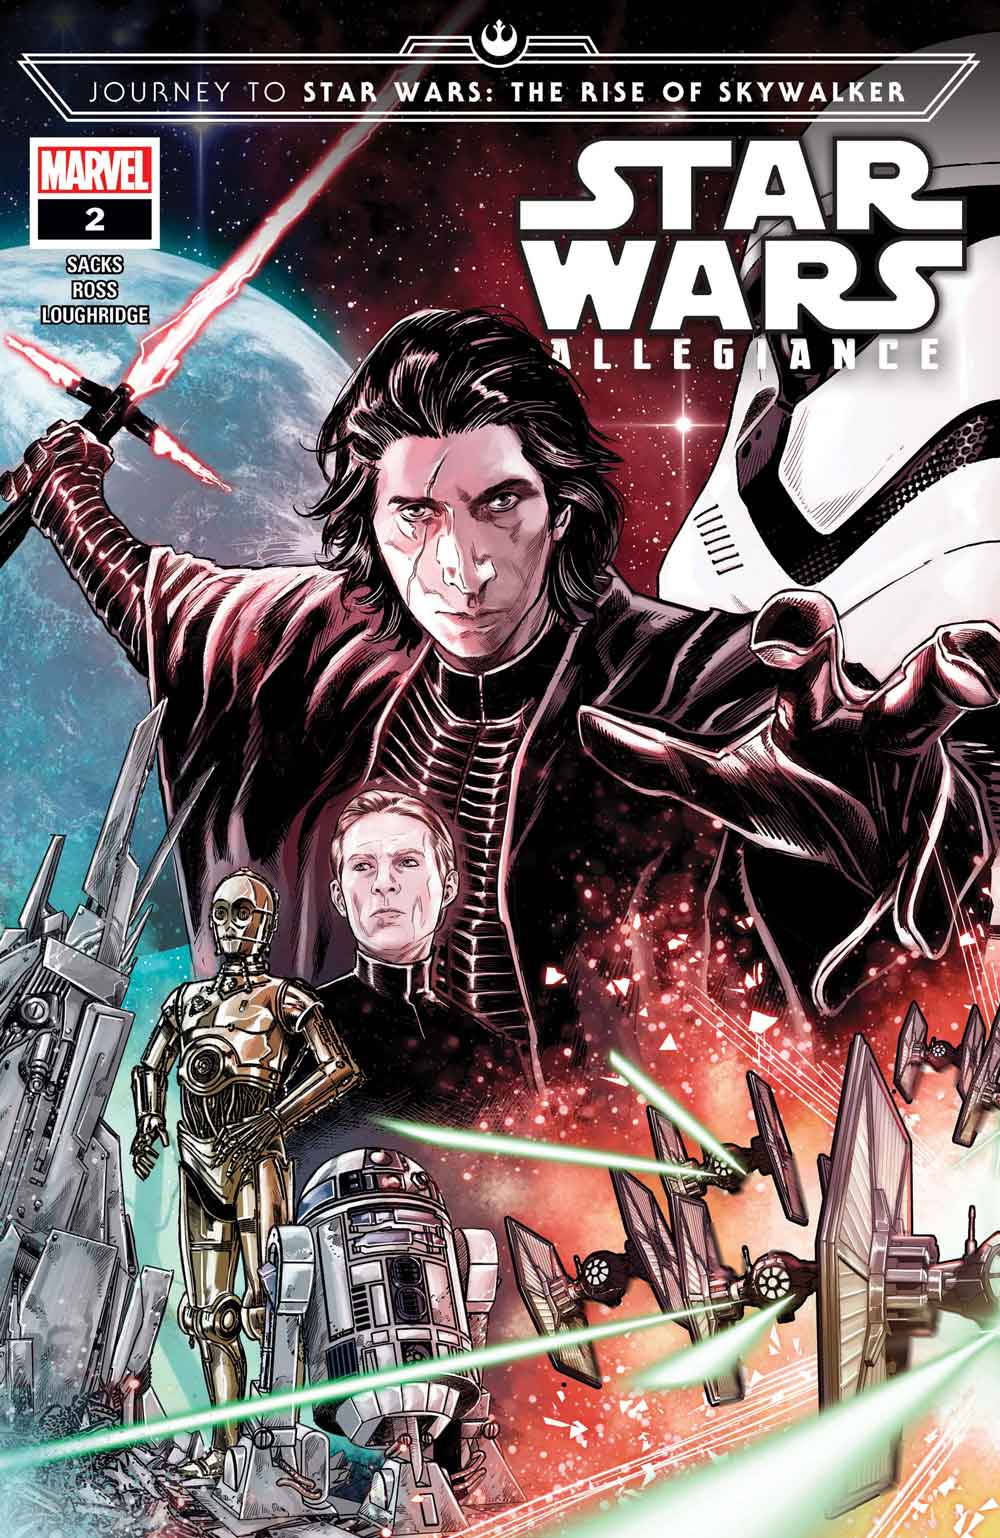 Journey to Star Wars: The Rise of Skywalker - Allegiance # 2 confirma que Kylo Ren finalmente ha superado a Darth Vader